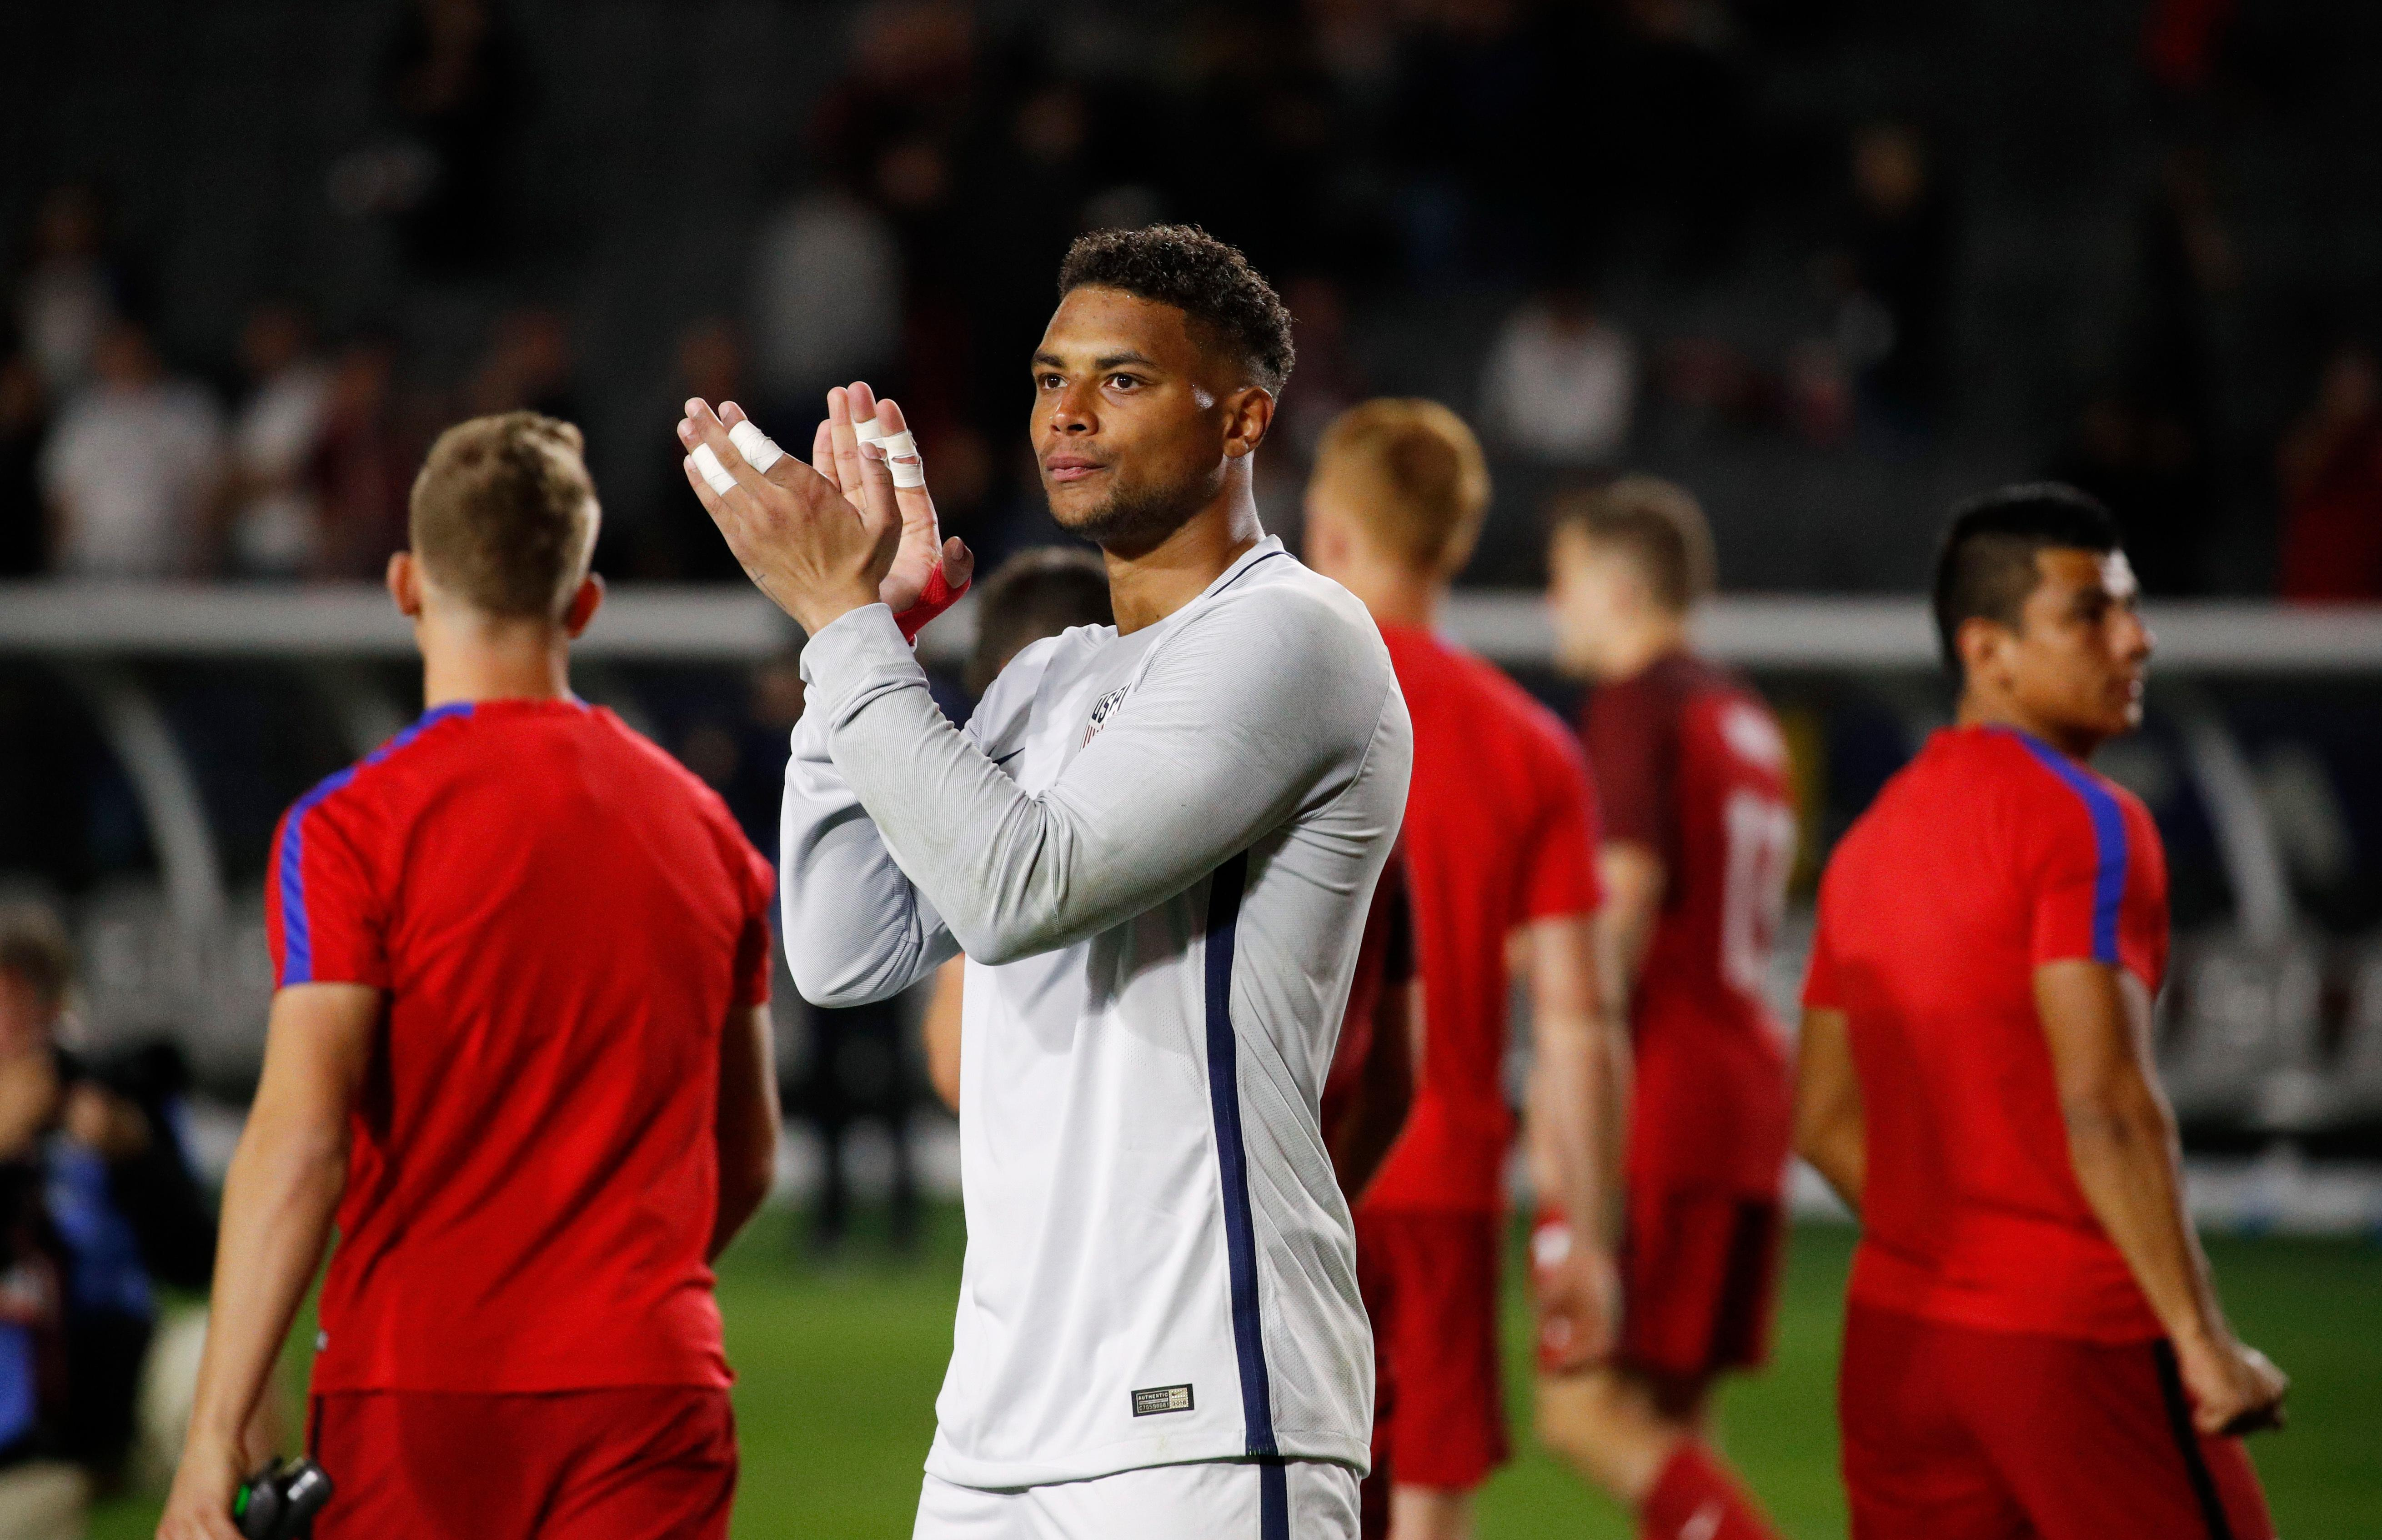 United States goalkeeper Zack Steffen, center, and teammates acknowledge the fans after the team's international friendly soccer match against Bosnia and Herzegovina, Sunday, Jan. 28, 2018, in Carson, Calif. The game ended in a 0-0 draw. (AP Photo/Jae C. Hong)